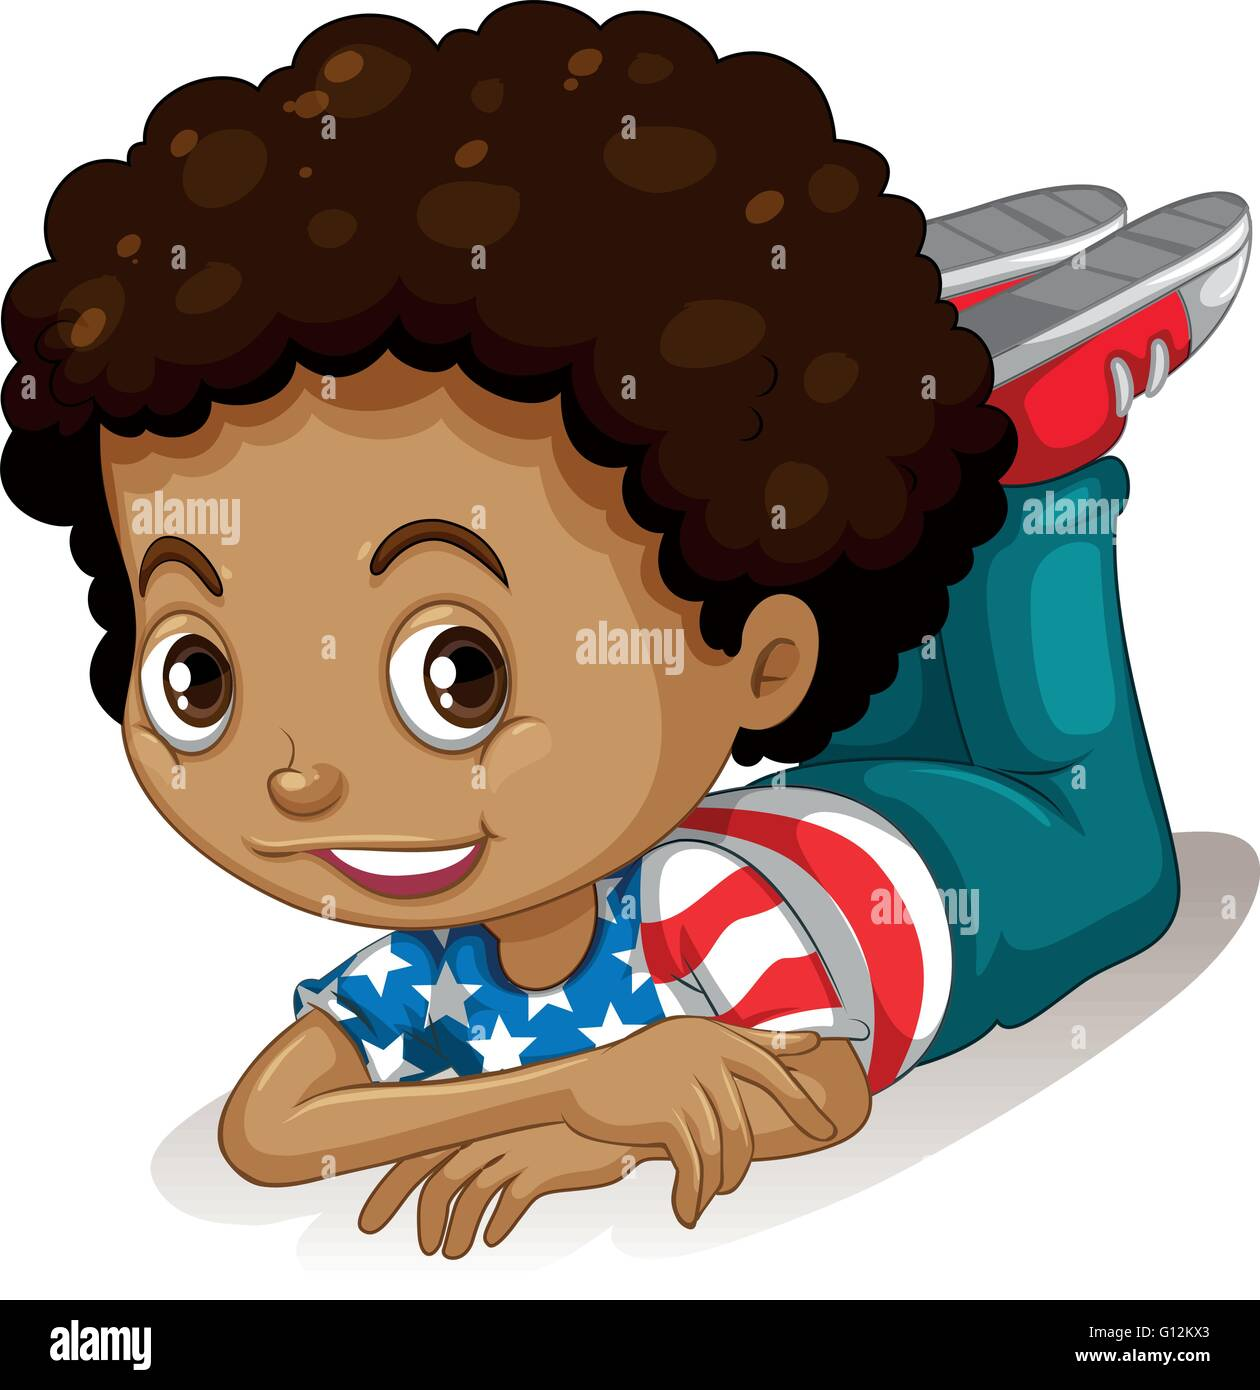 Little Boy Curly Hair Illustration High Resolution Stock Photography And Images Alamy